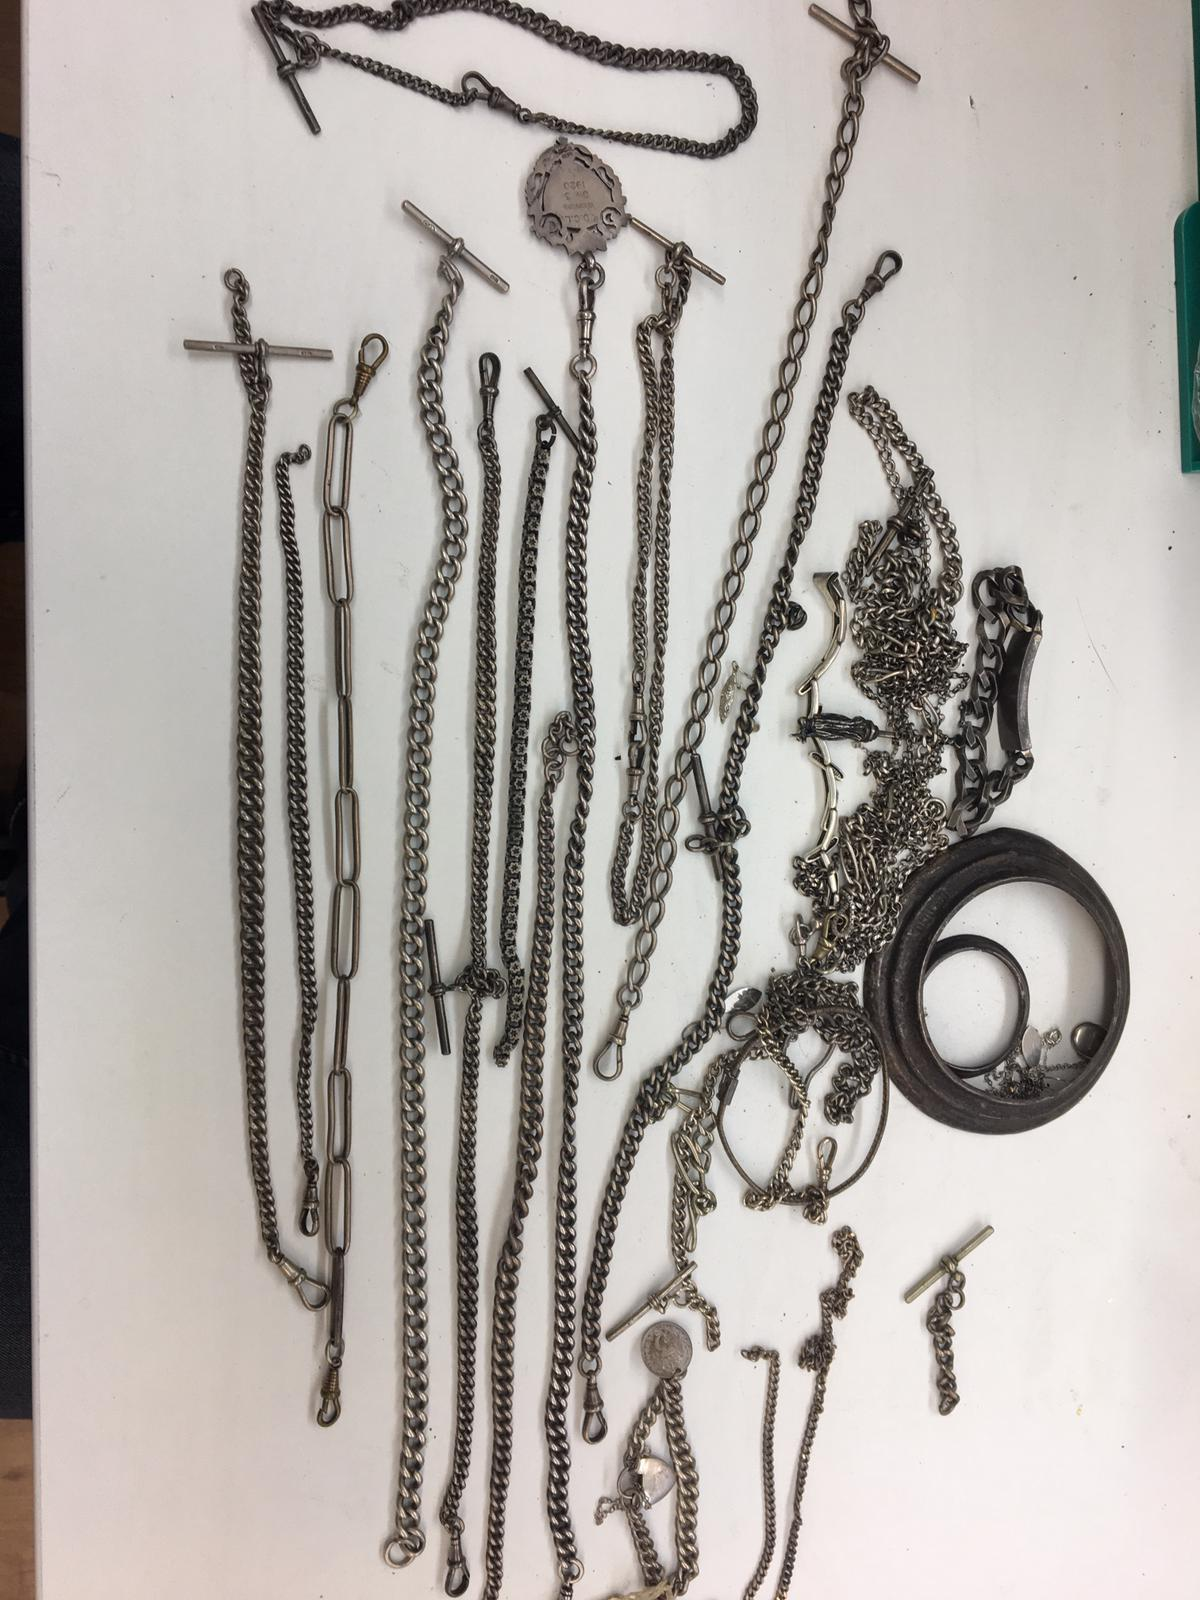 Large qty of silver Albert chains and bracelets, total weight 650 grams.